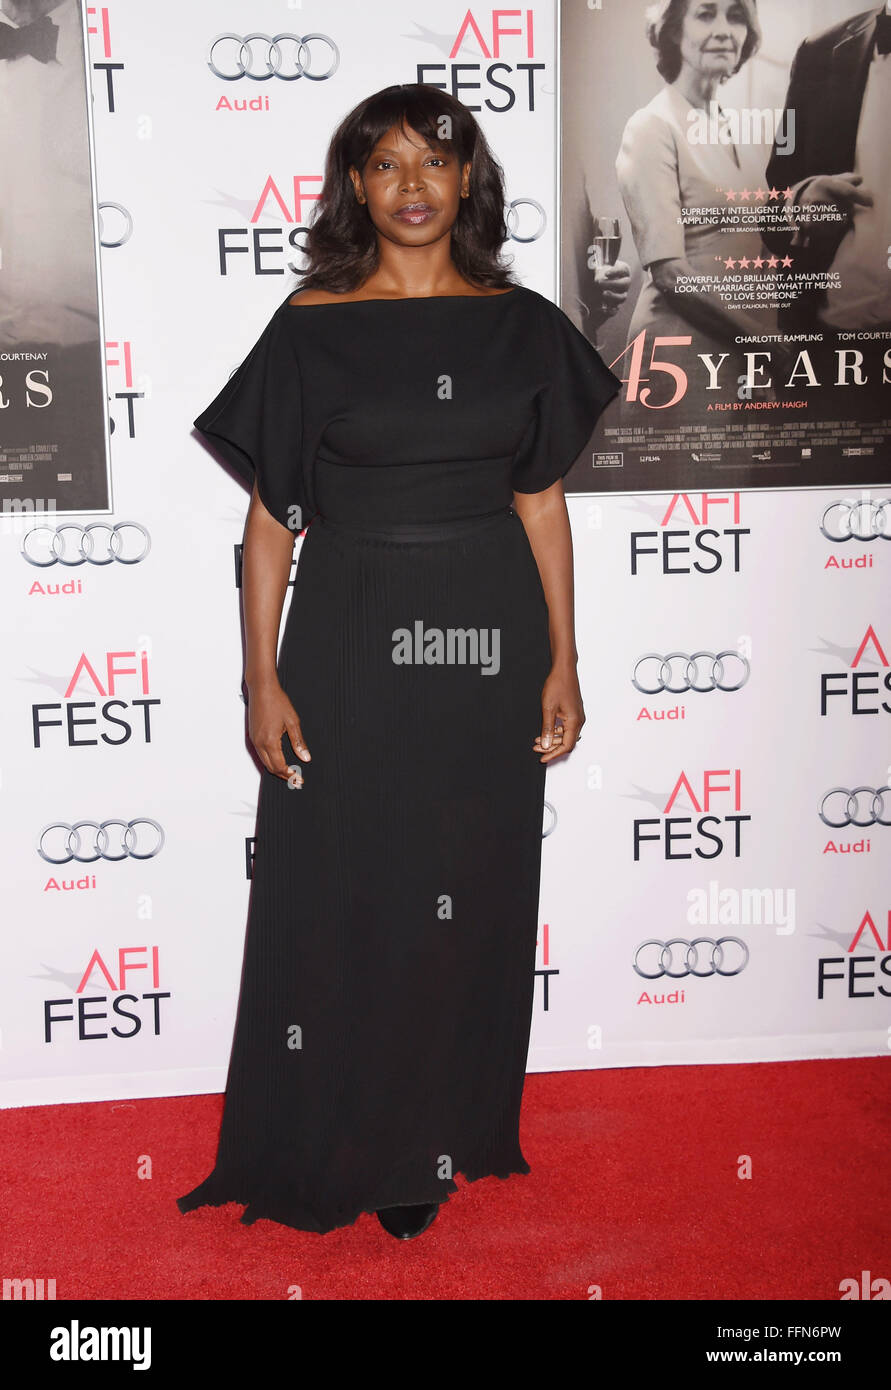 AFI FEST Director Jacqueline Lyanga arrives at the AFI FEST 2015 Presented by Audi Tribute to Charlotte Rampling - Stock Image